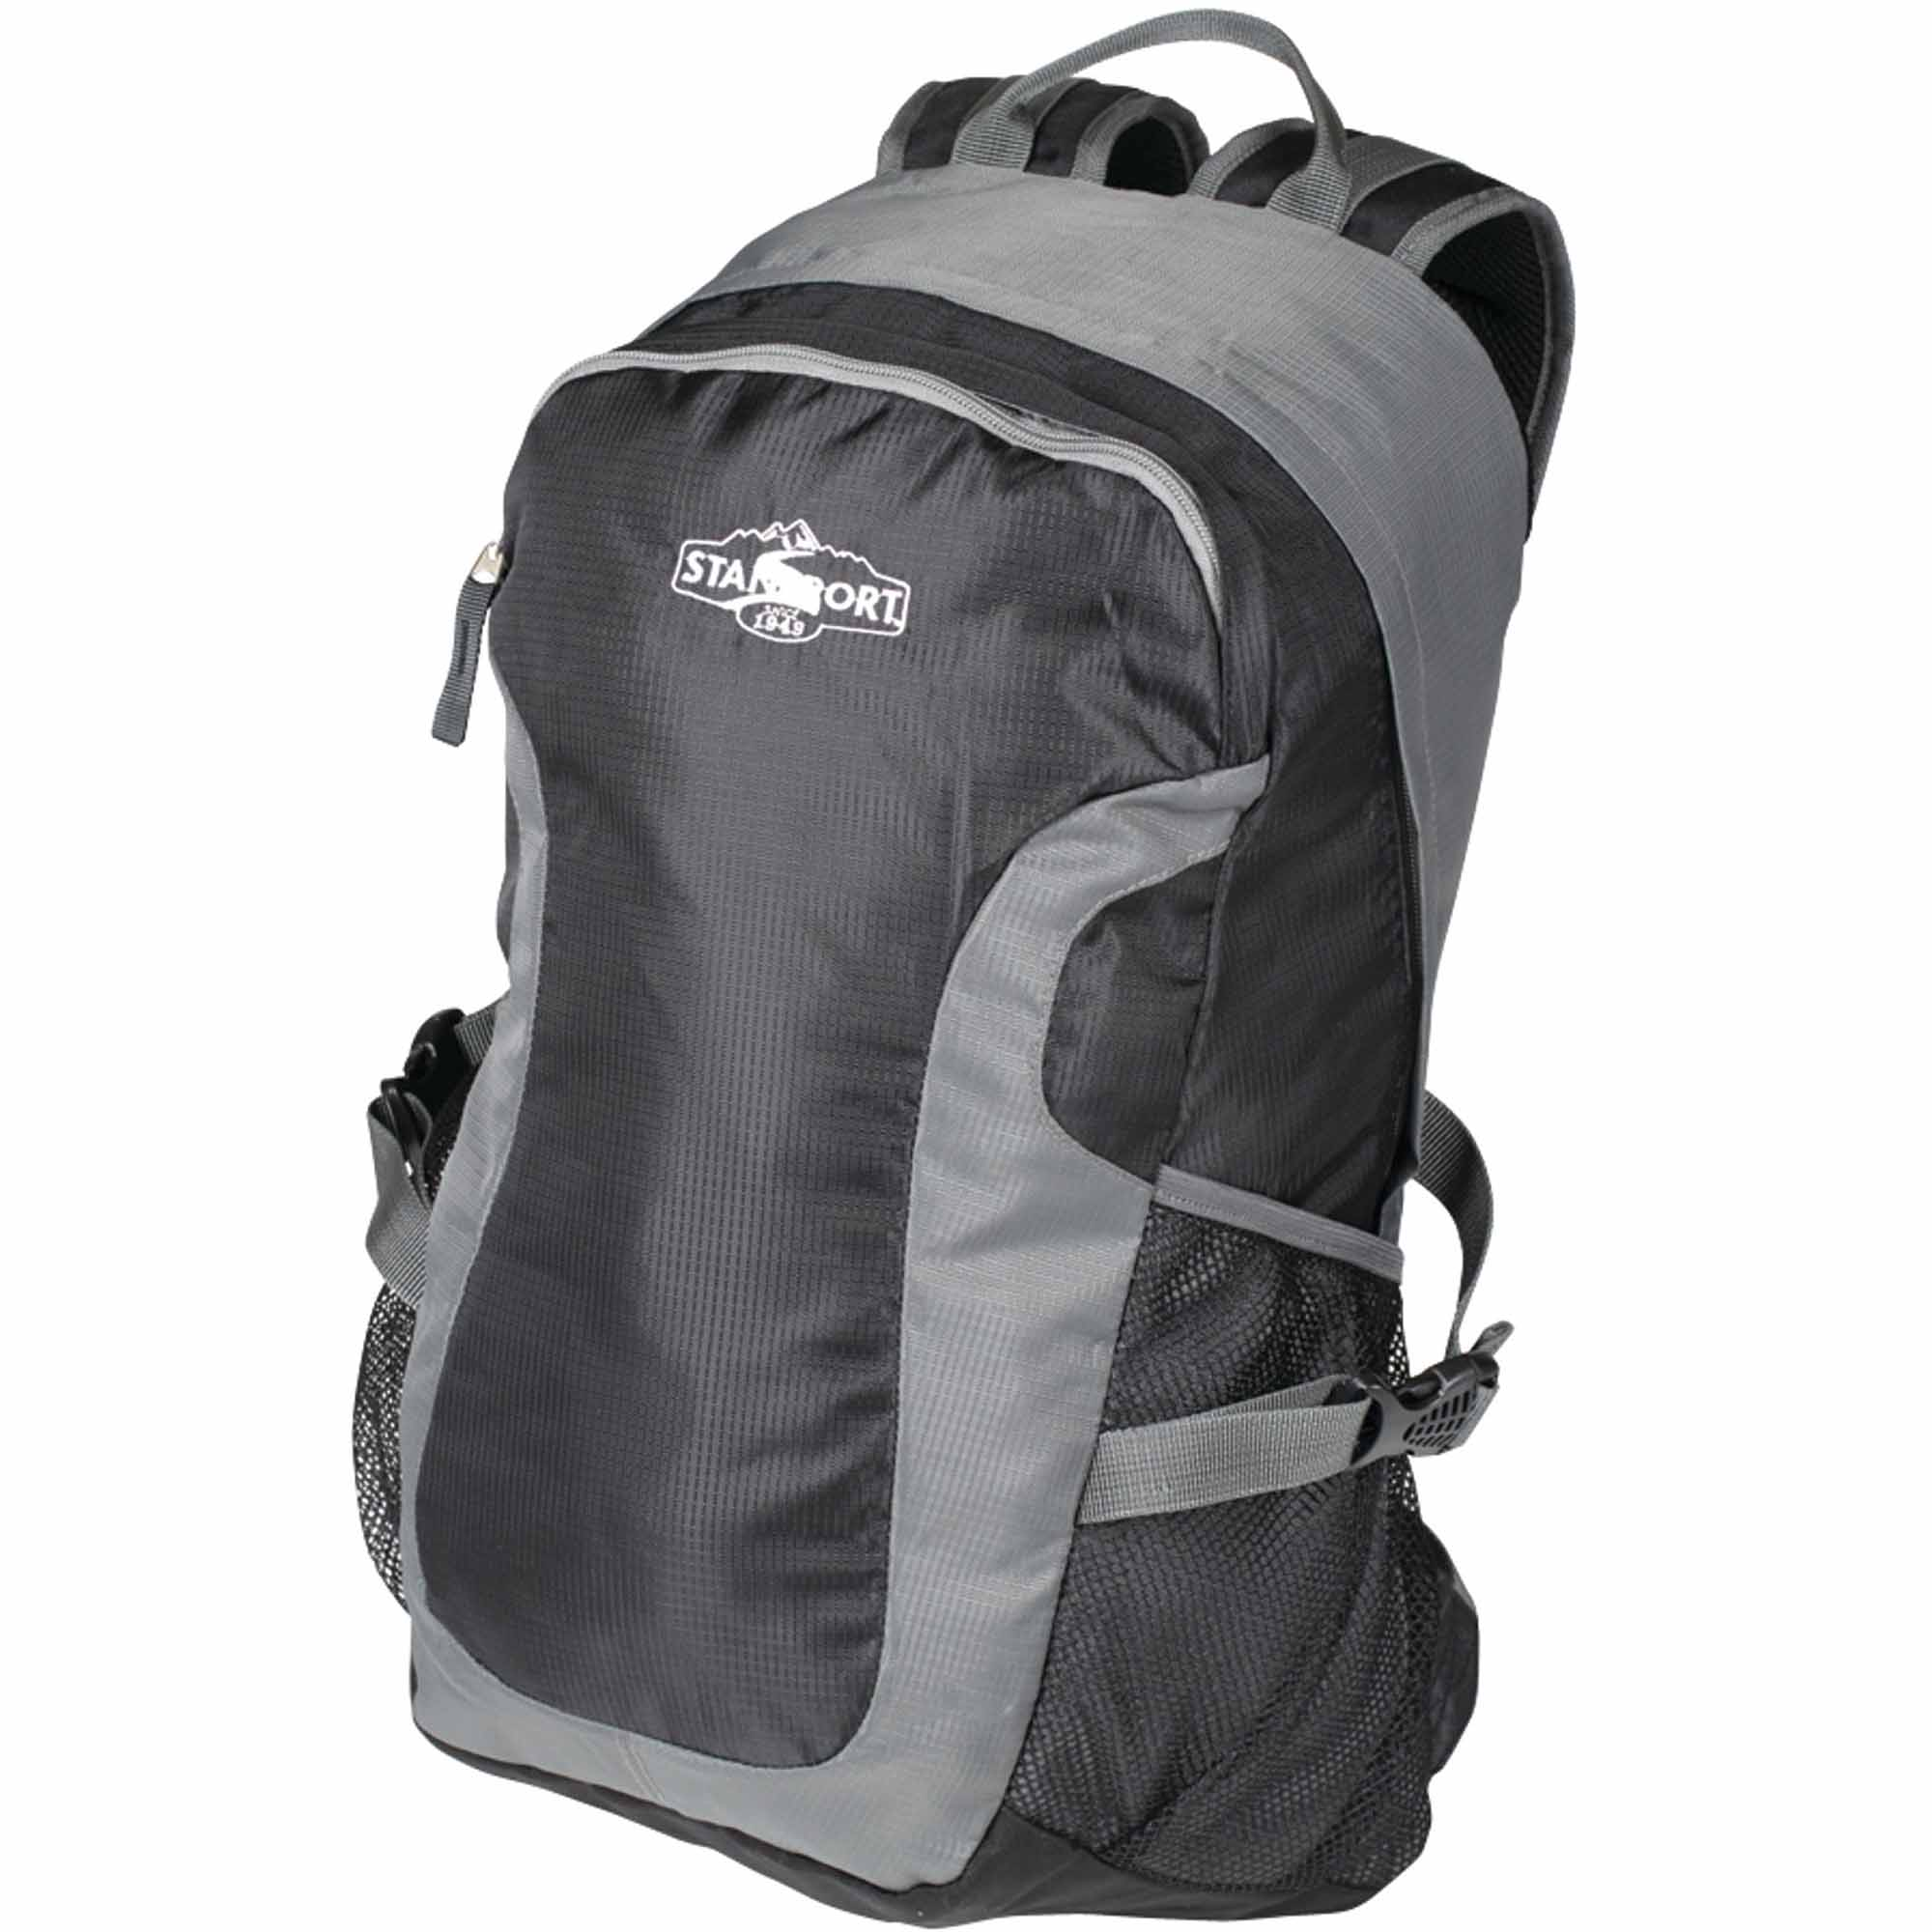 Stansport 569 Nylon Day Pack